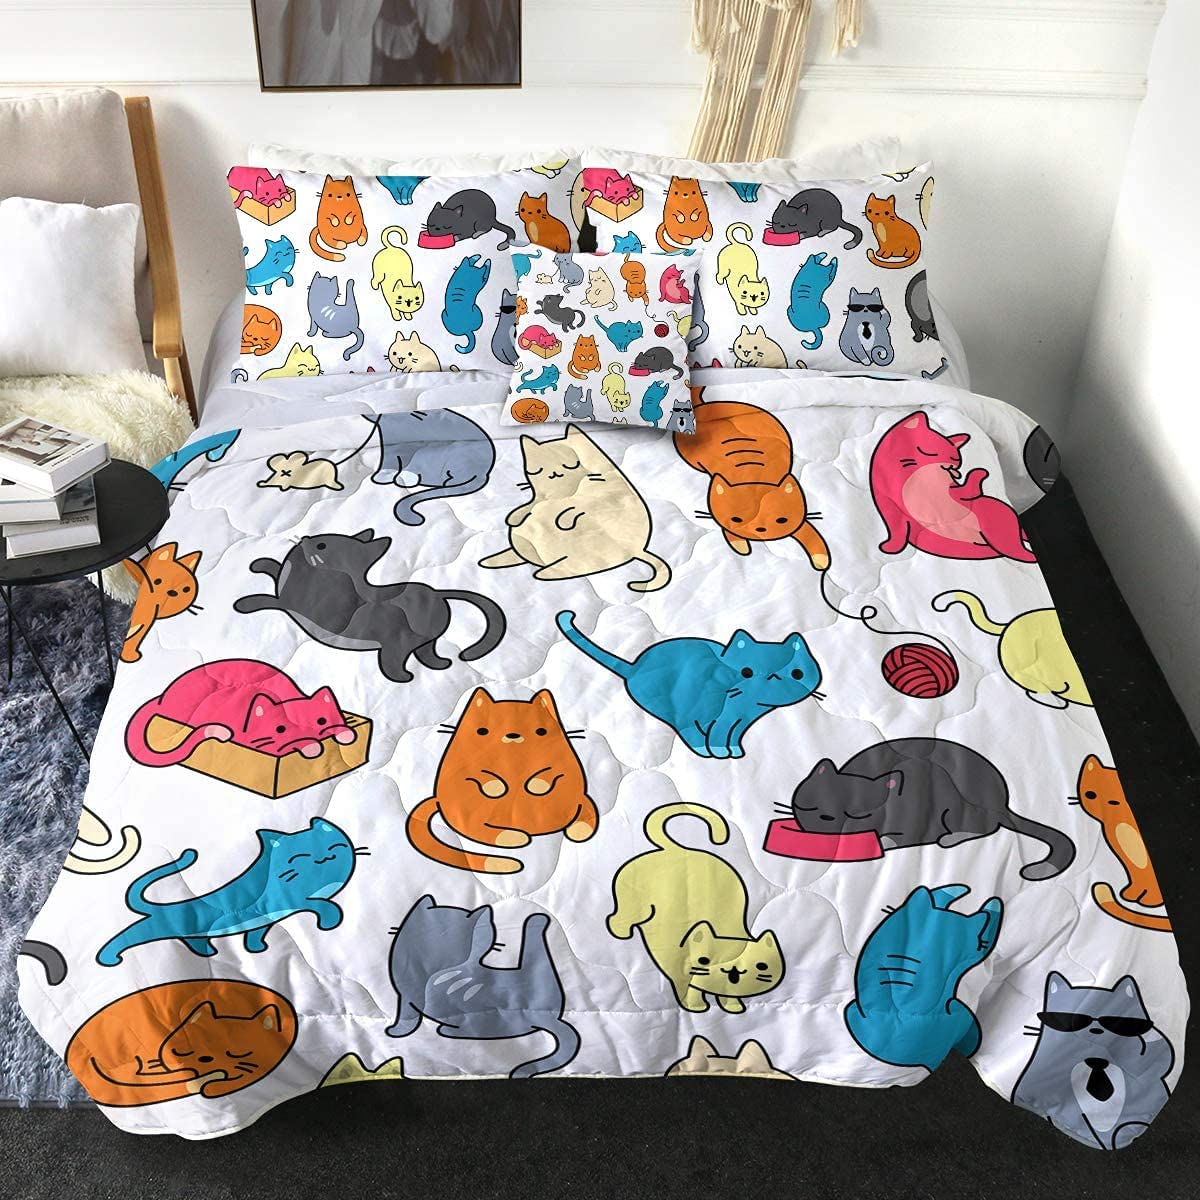 Sleepwish 4 Piece Colorful Cats Comforter Shams Set Pillow New popularity with Ranking TOP20